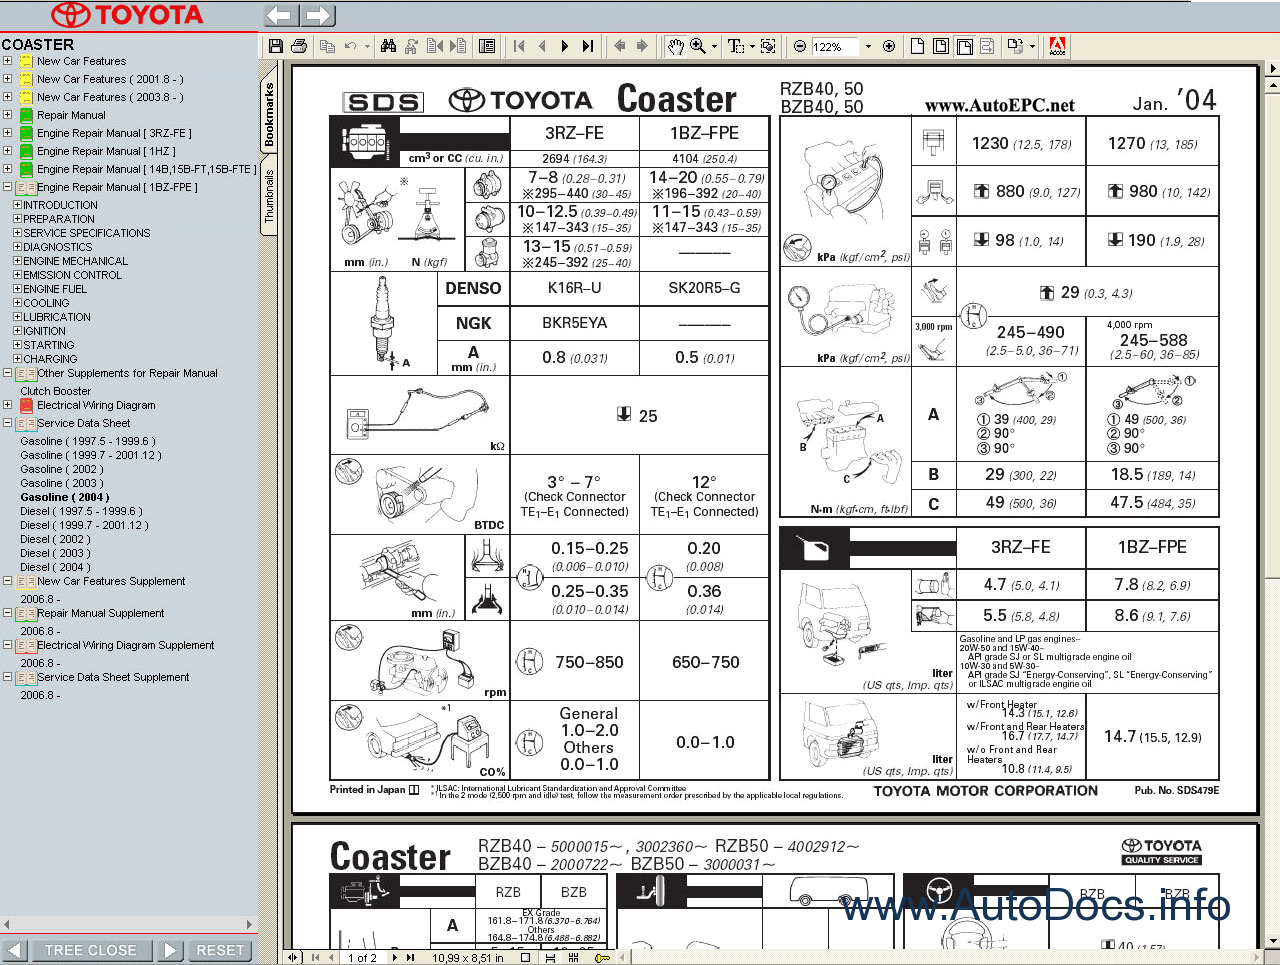 toyota optimo wiring diagram wire center \u2022 wiring schematic for 1992 toyota corolla toyota coaster optimo service manual repair manual order download rh autodocs info 1994 toyota pickup wiring